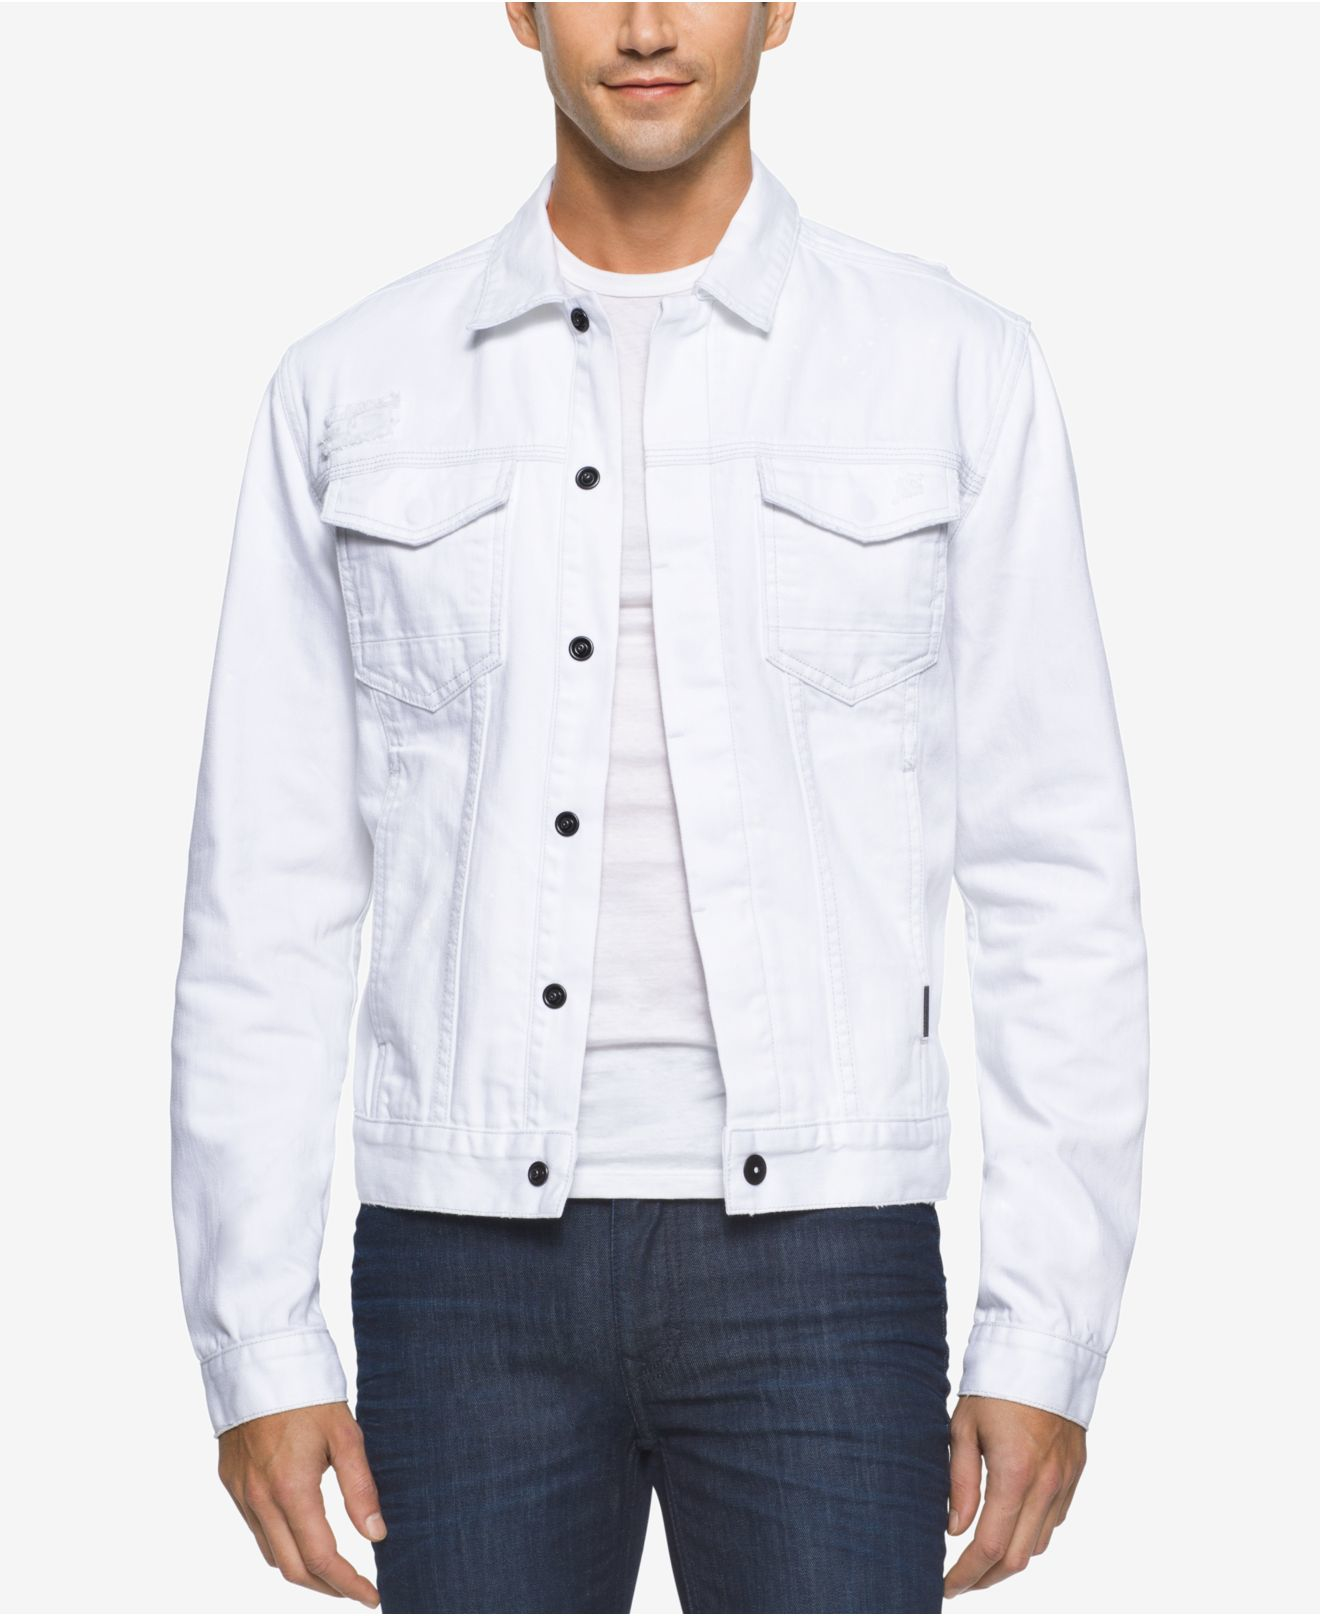 Calvin klein jeans Menu0026#39;s Painted White Jean Jacket in White for Men | Lyst